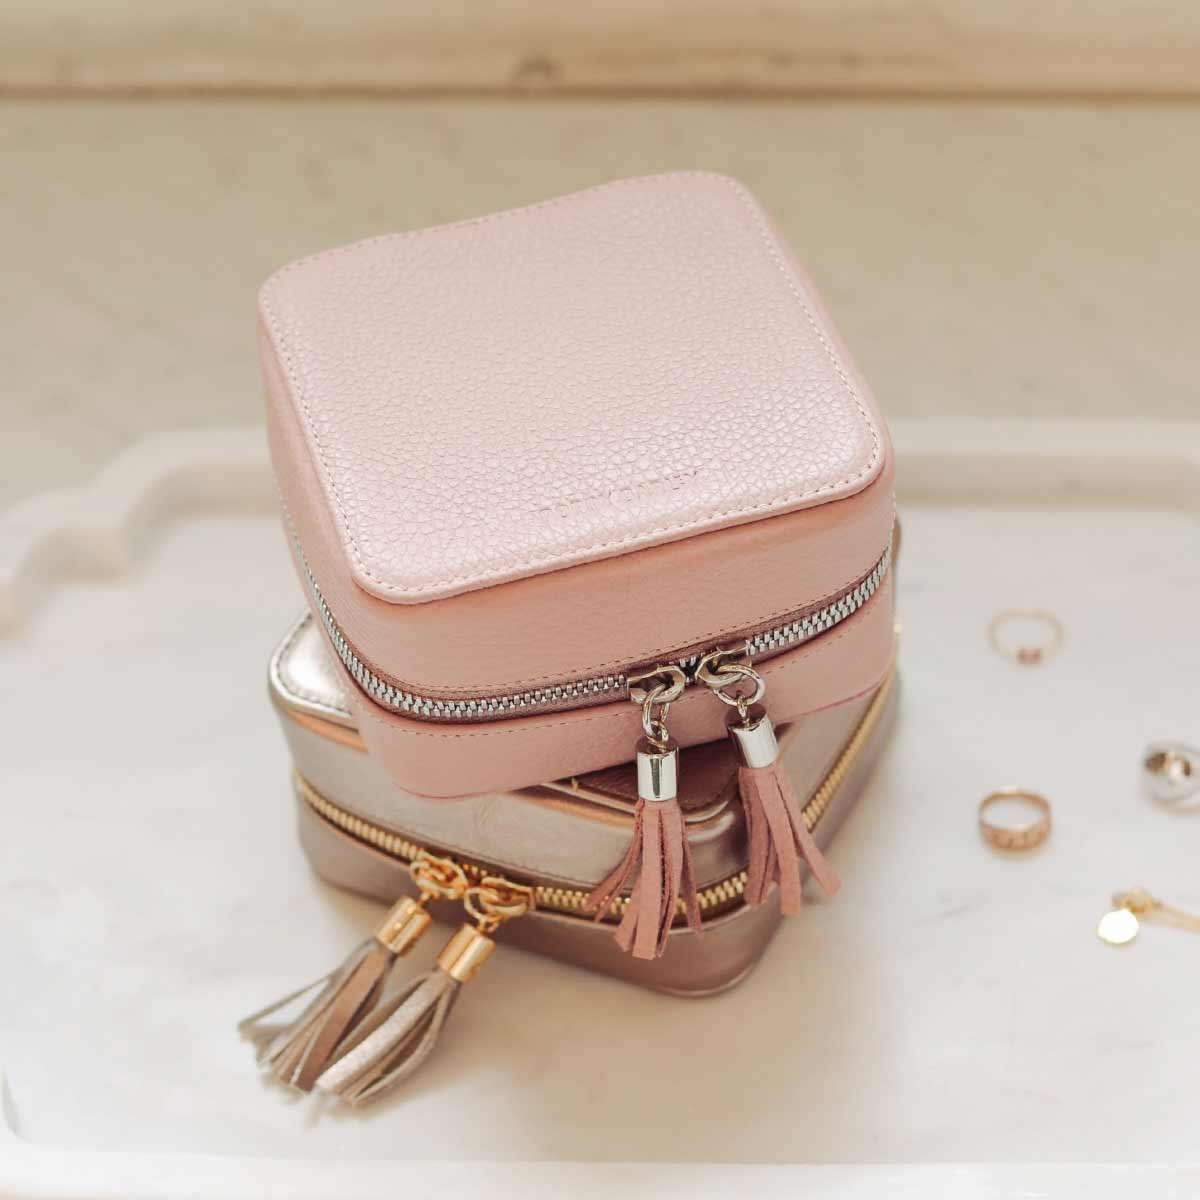 TThe Travel Jewelry Case  - Poppy Barley